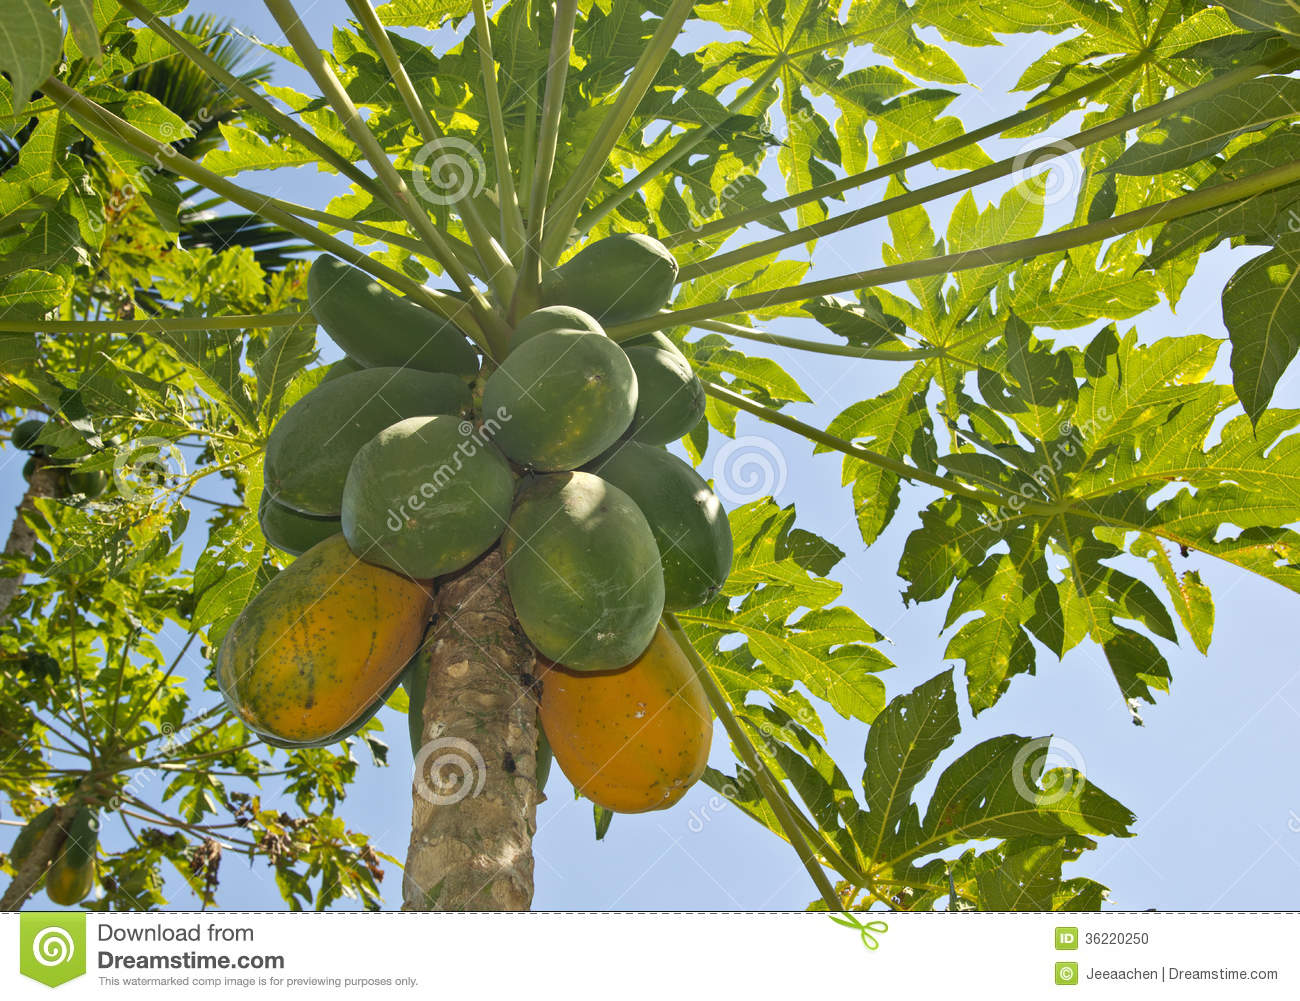 The Papaya Tree Maturing Stock Photo - Image: 36220250